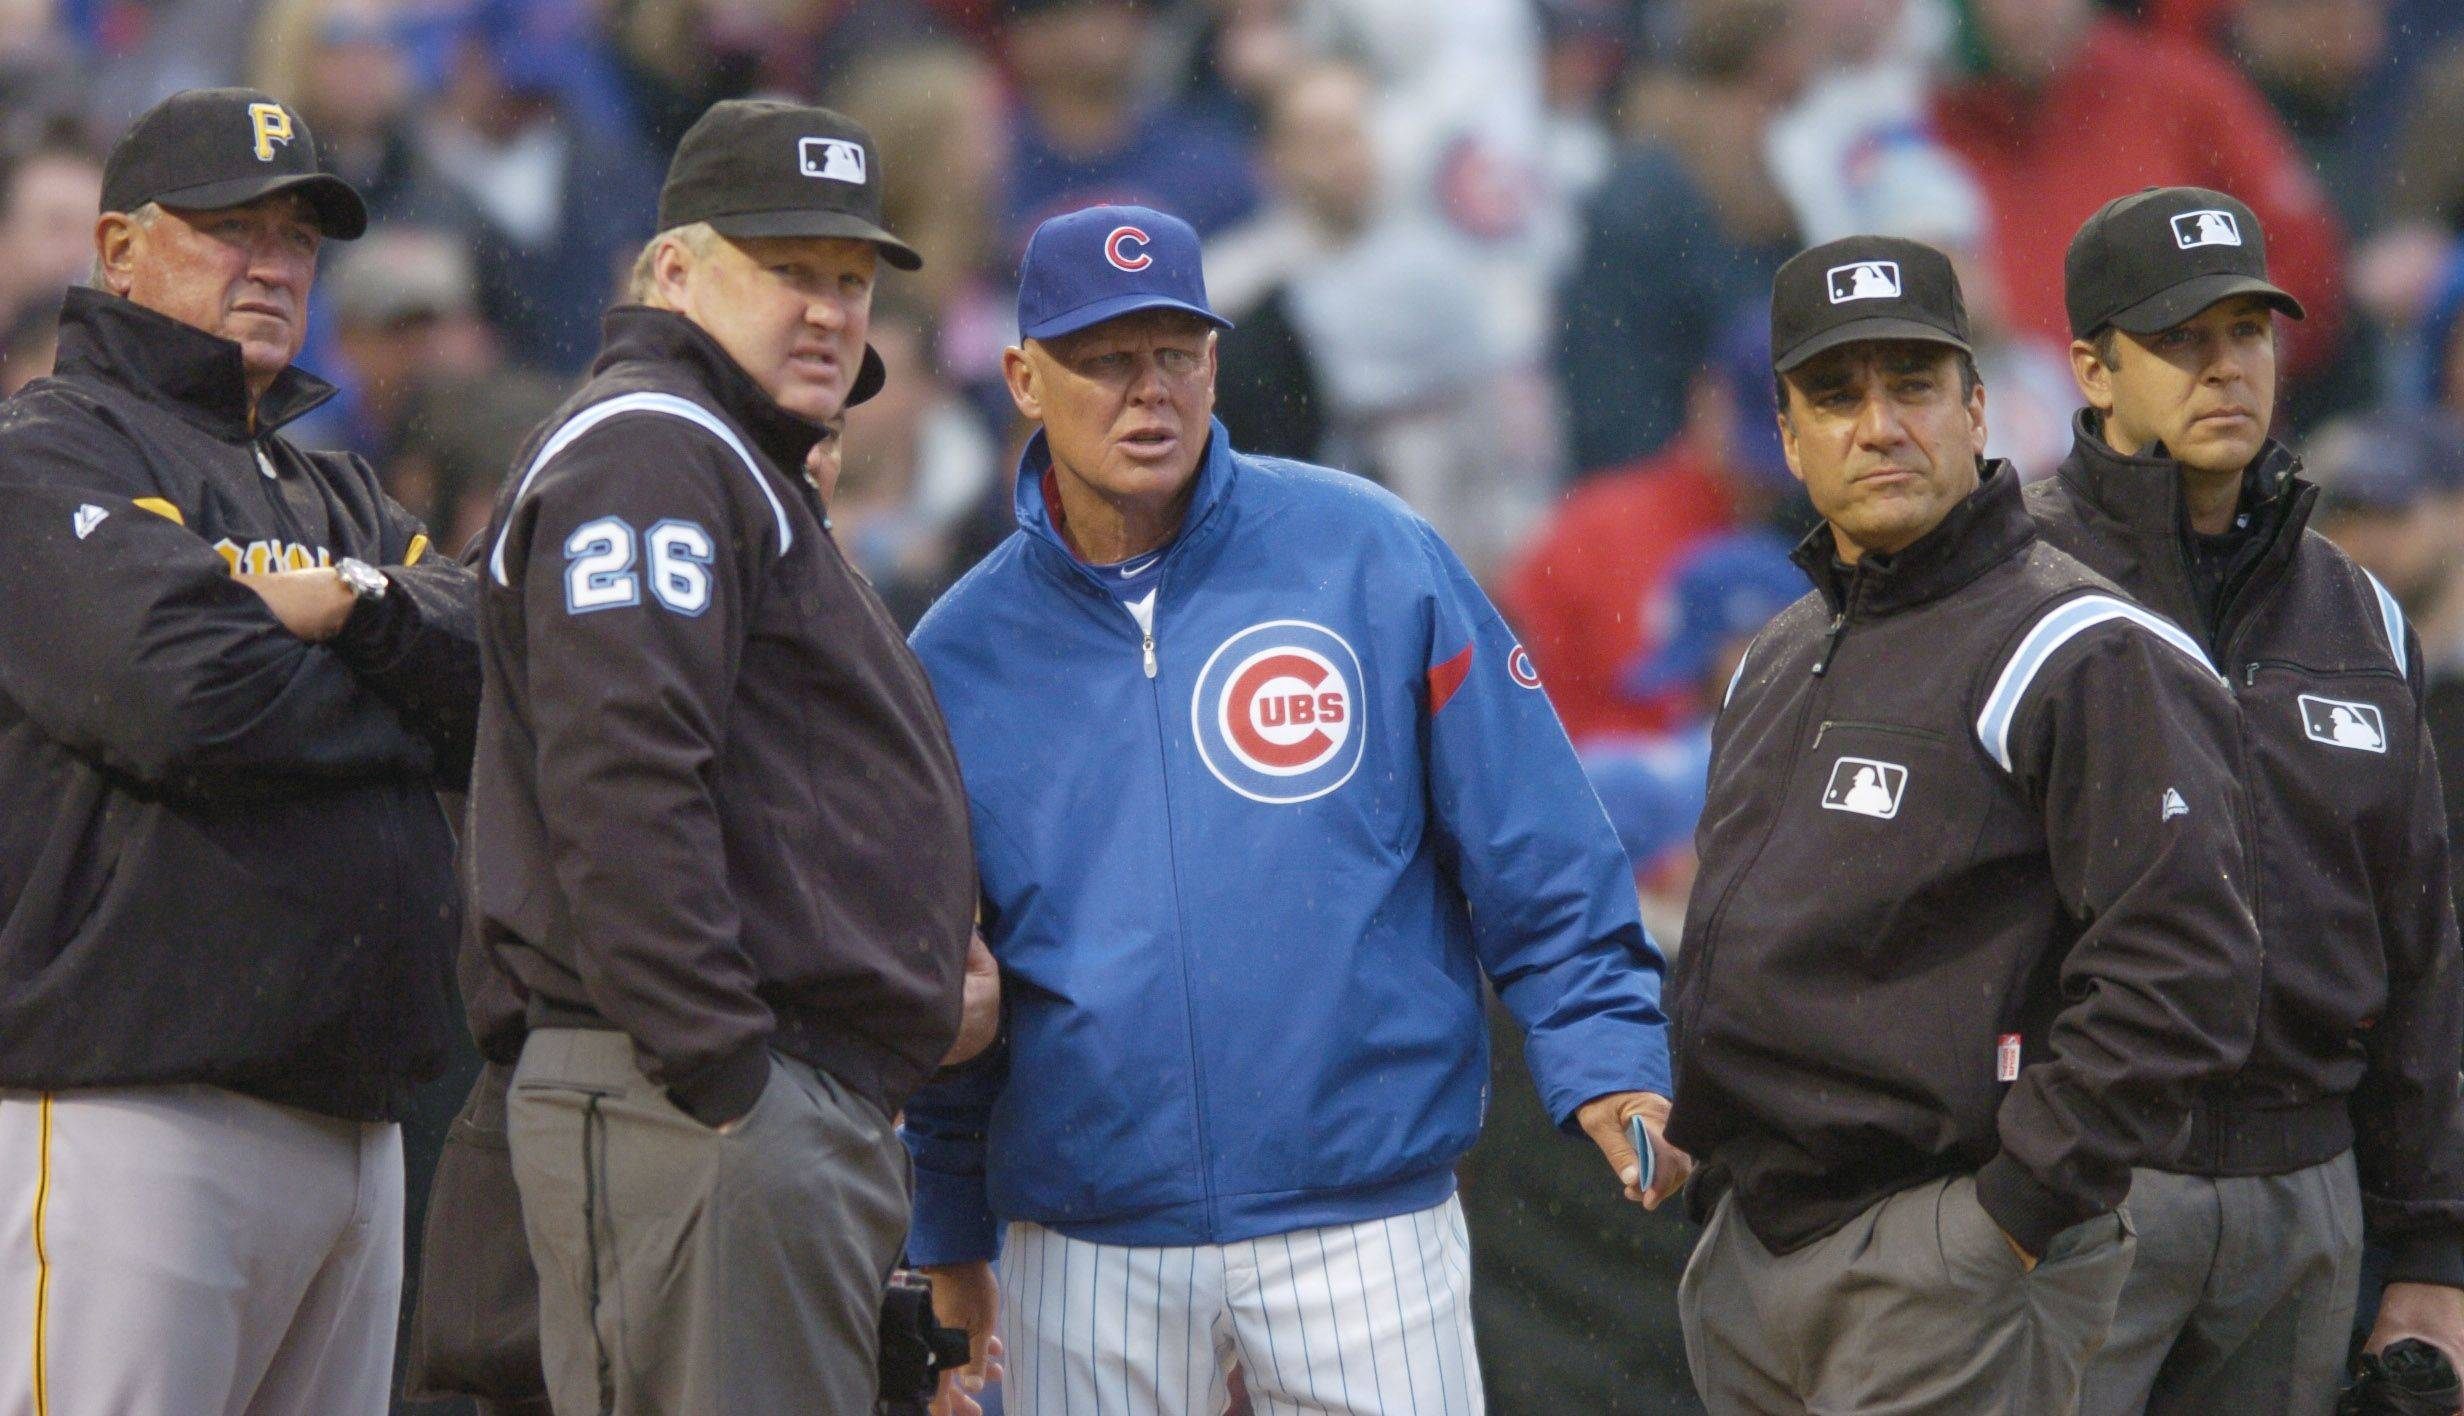 Cubs manager Mike Quade, middle, discusses the ground rules with the umpires and Pittsburgh manager Cint Hurdle prior to the game.